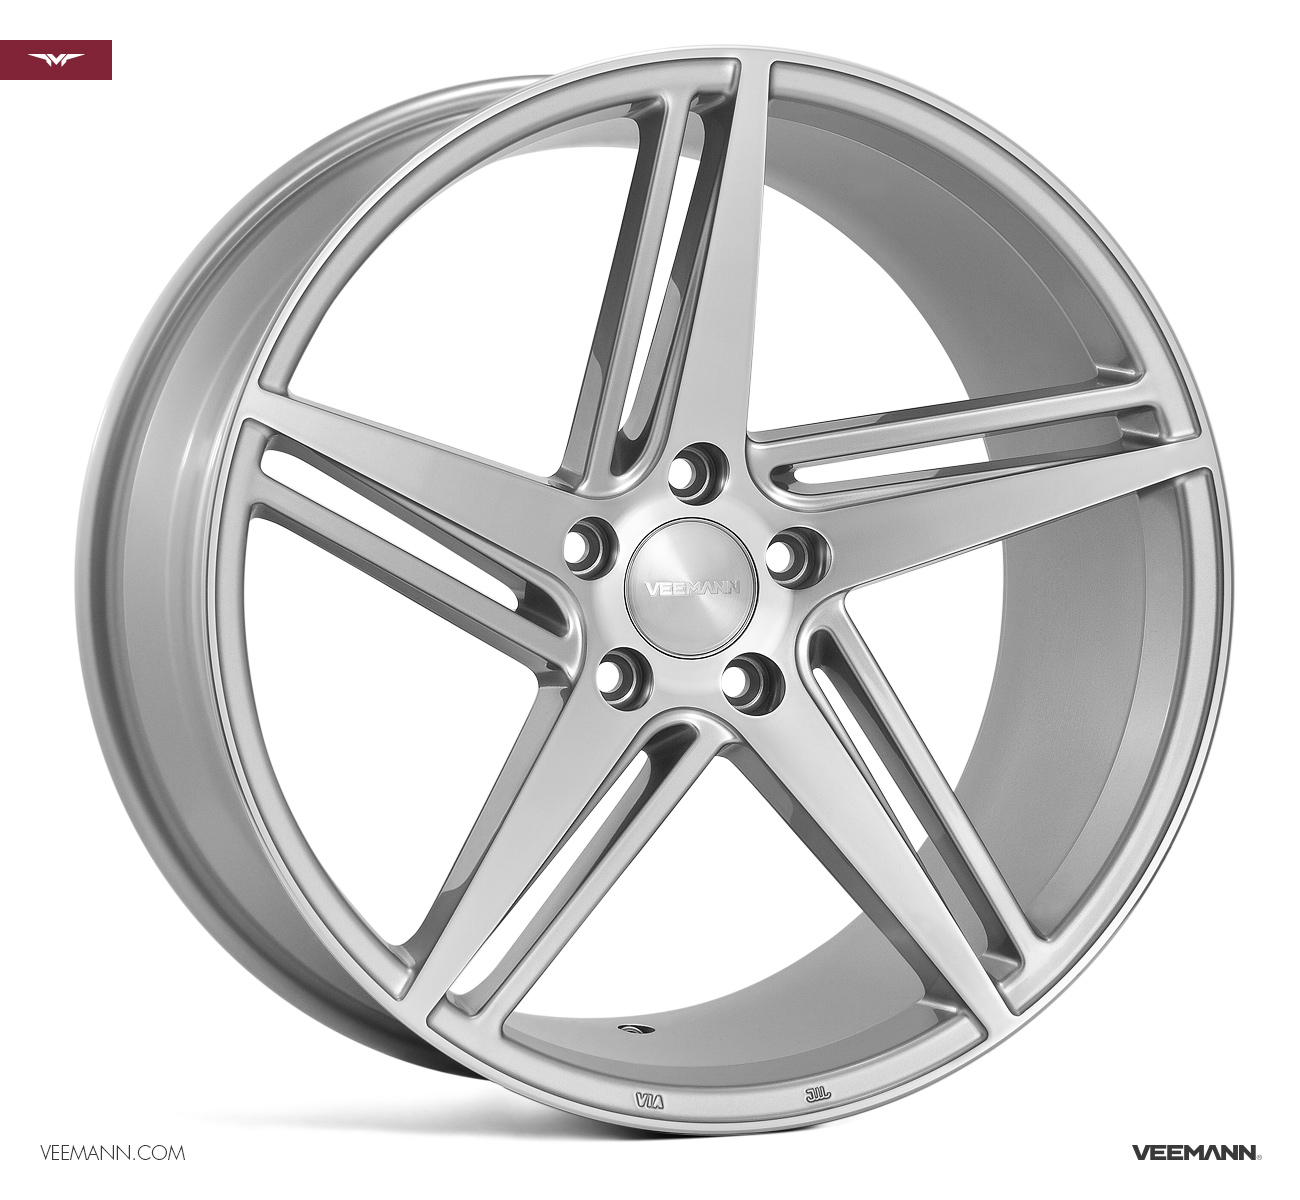 "NEW 19"" VEEMANN V-FS31 ALLOY WHEELS IN SILVER POL WITH WIDER 9.5"" REARS"